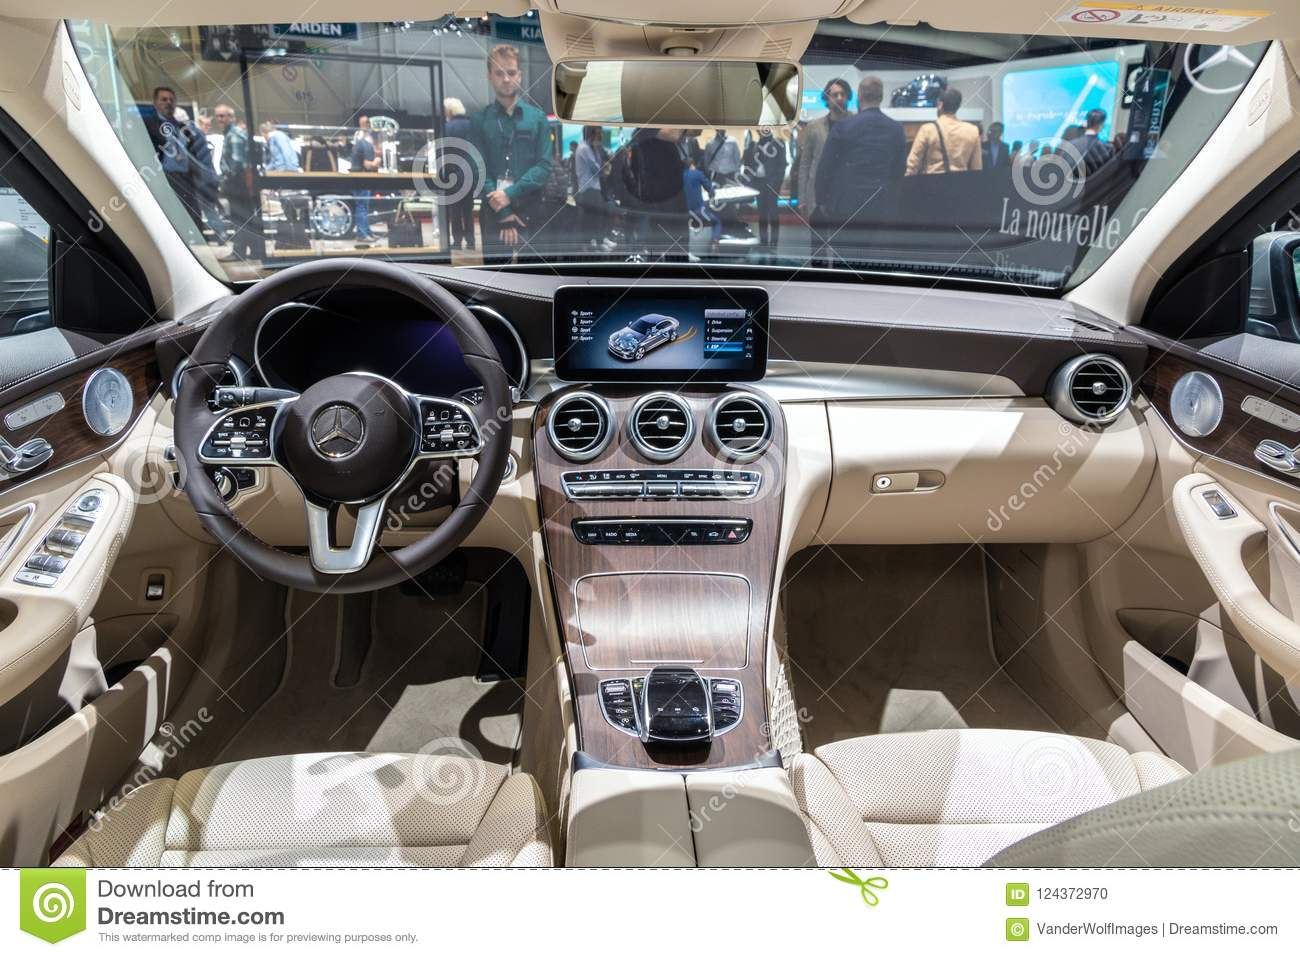 Mercedes Benz Interior >> Mercedes Benz C Class C200 Car Interior Editorial Image